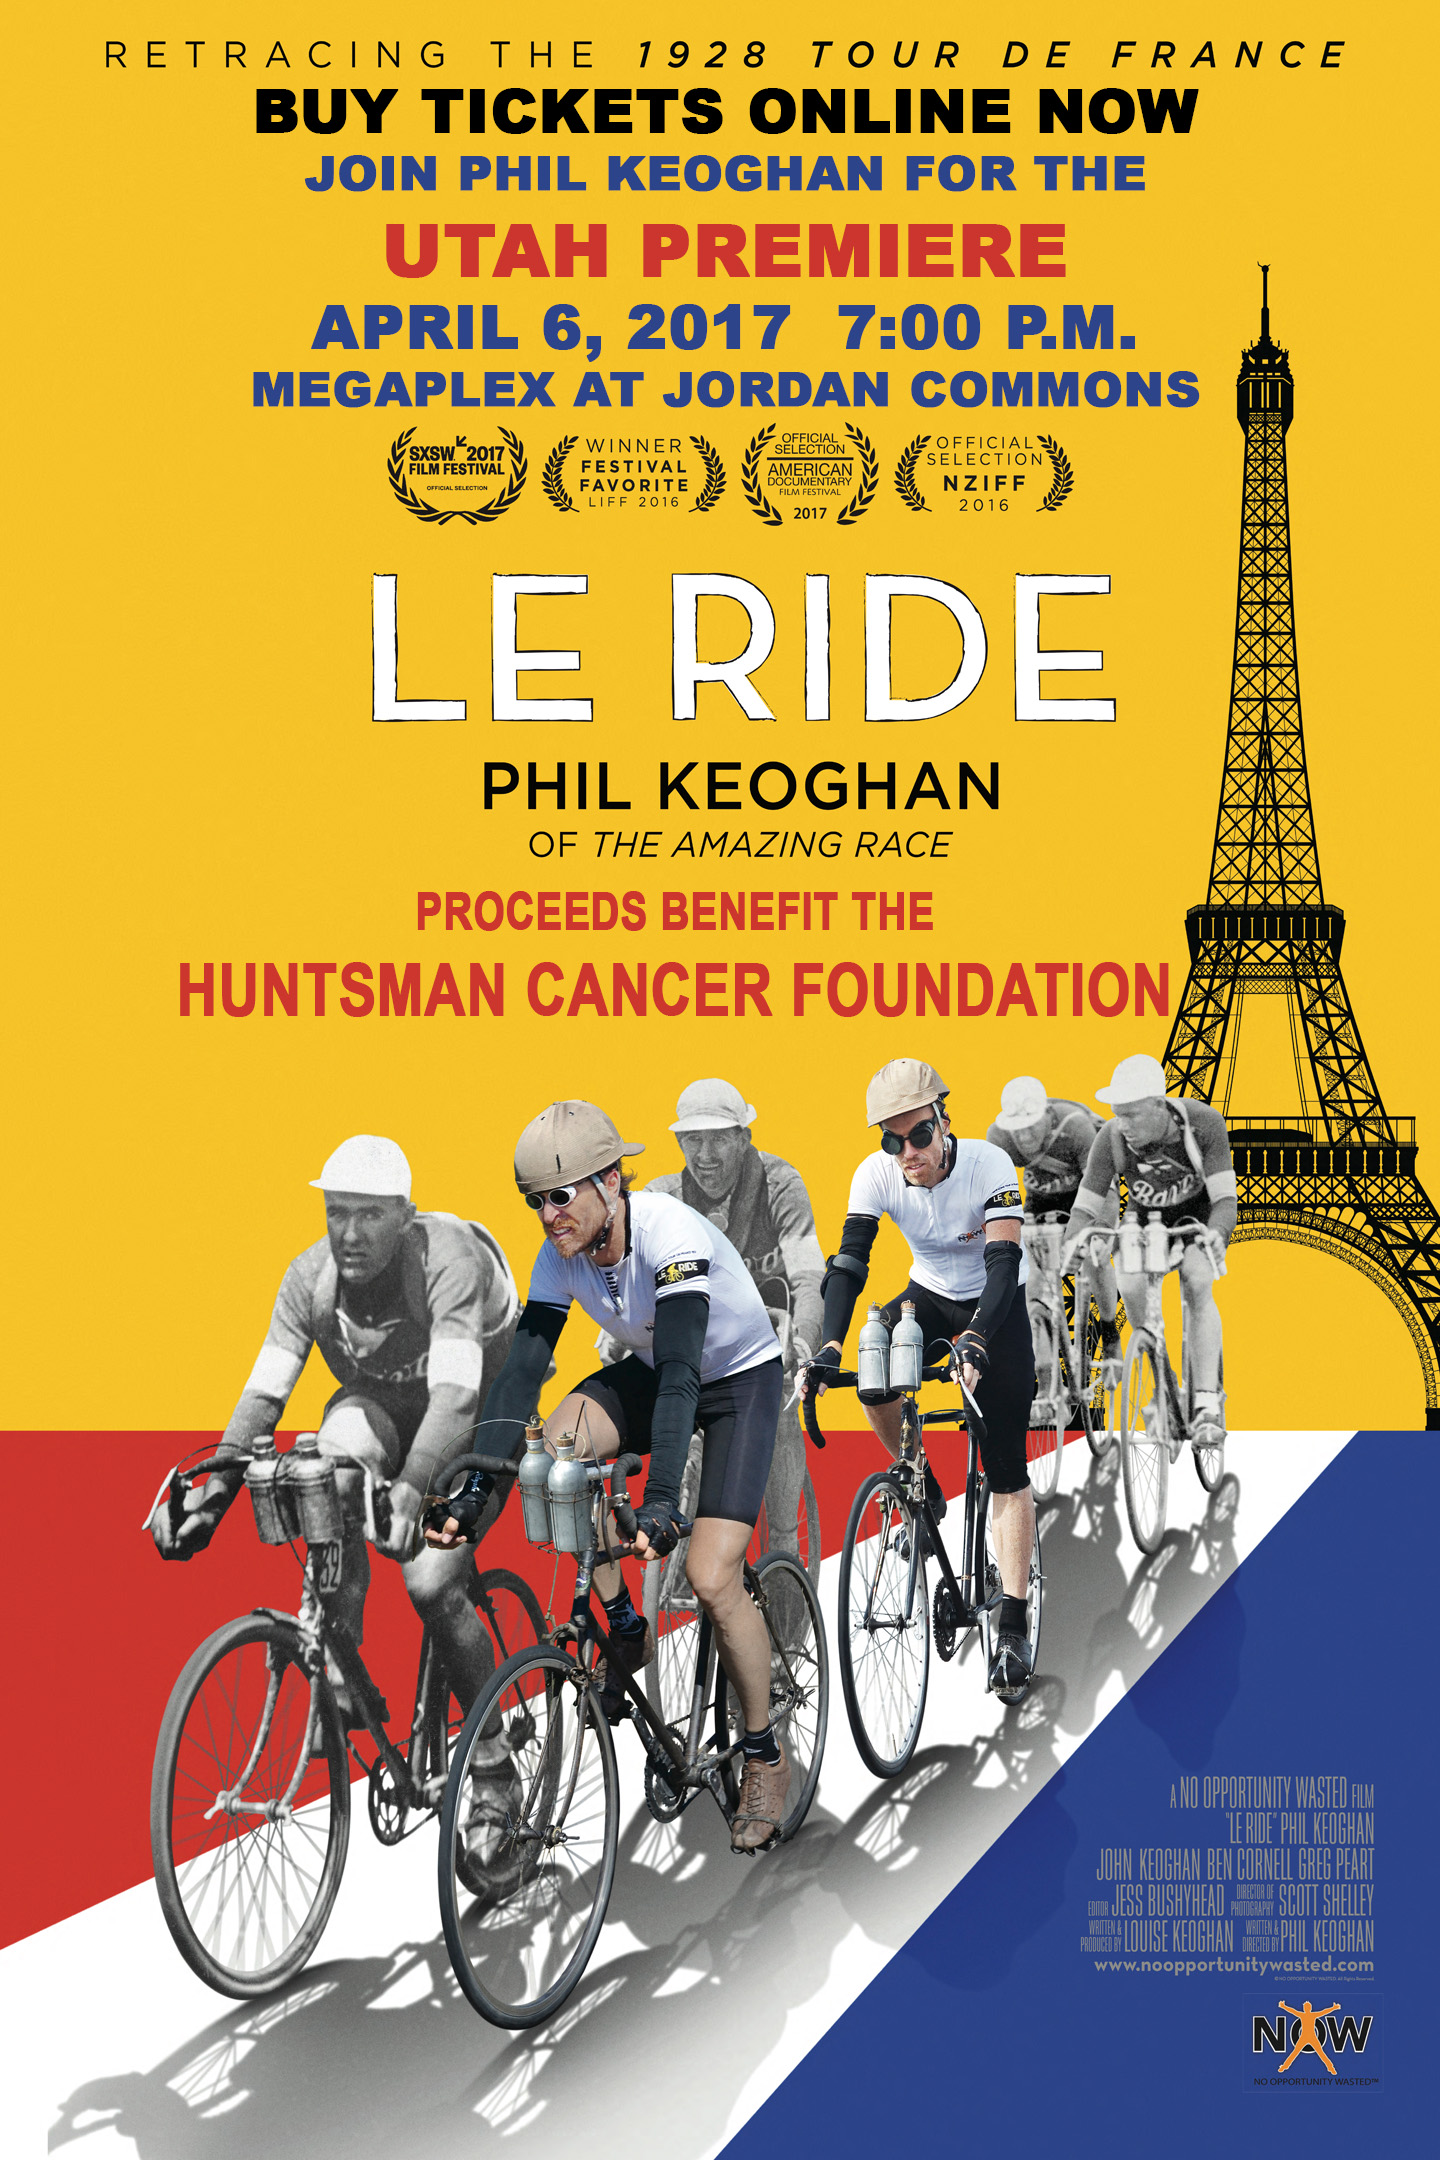 Le Ride, a documentary on retracing the route of the 1928 Tour de France, will show in Salt Lake City at the Megaplex at Jordon Commons at 7 pm on April 6, 2017.